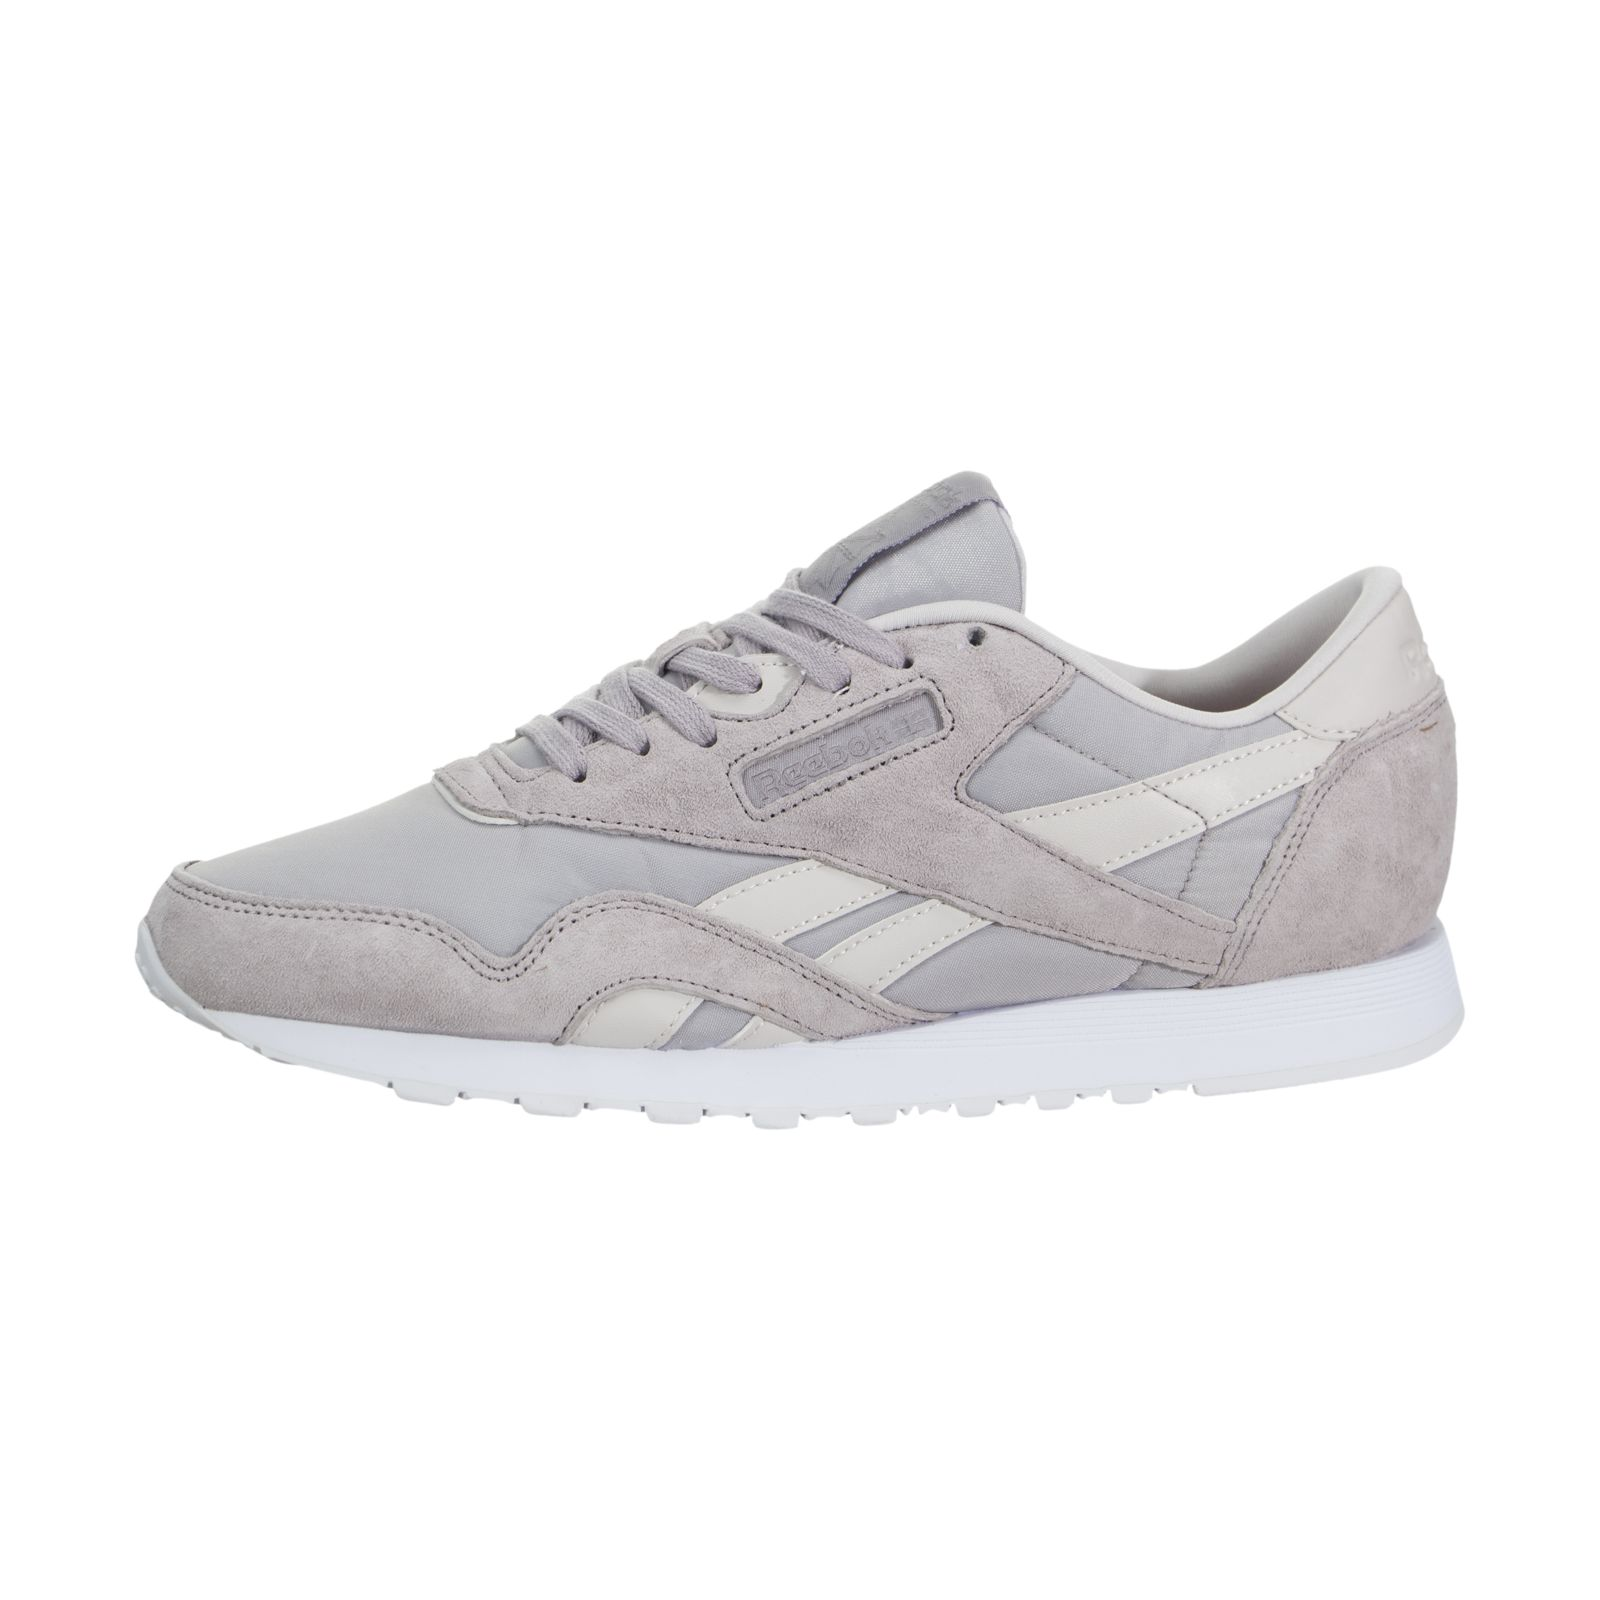 12305ef065c Image is loading Reebok-Classic-Nylon-x-FACE-bd2682